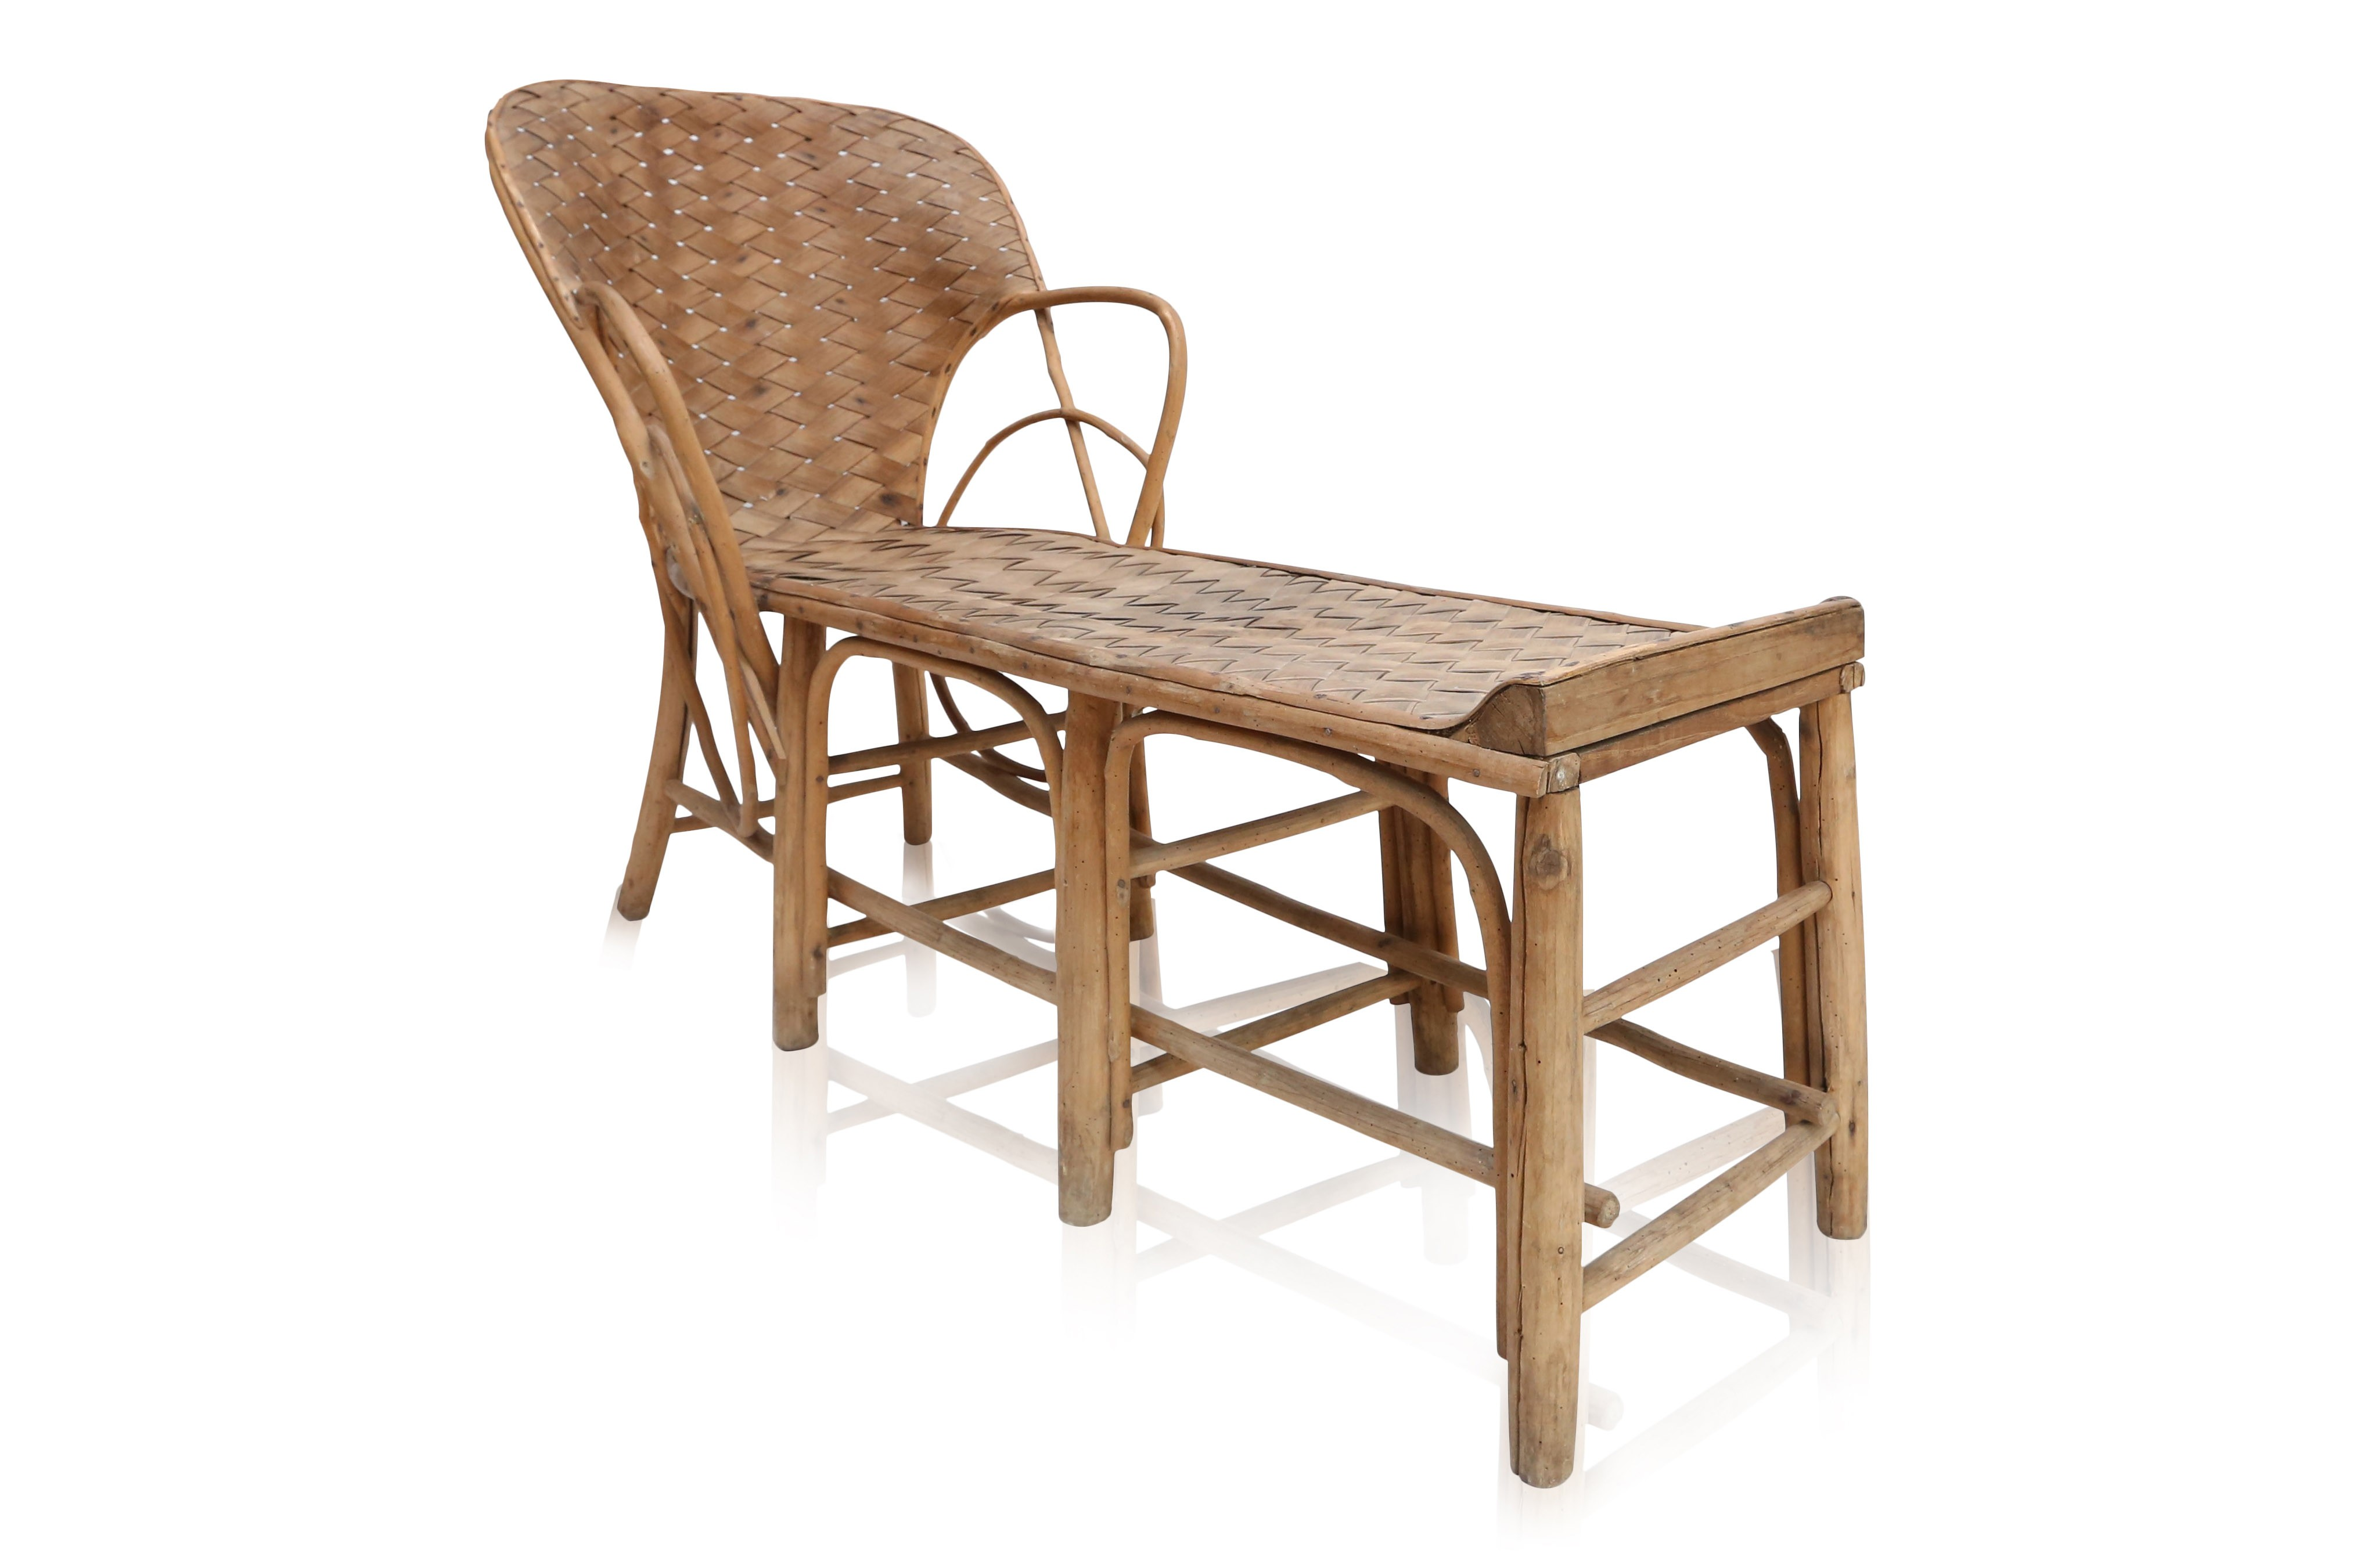 French Lounge Chair In Rattan   1960s. Previous Next